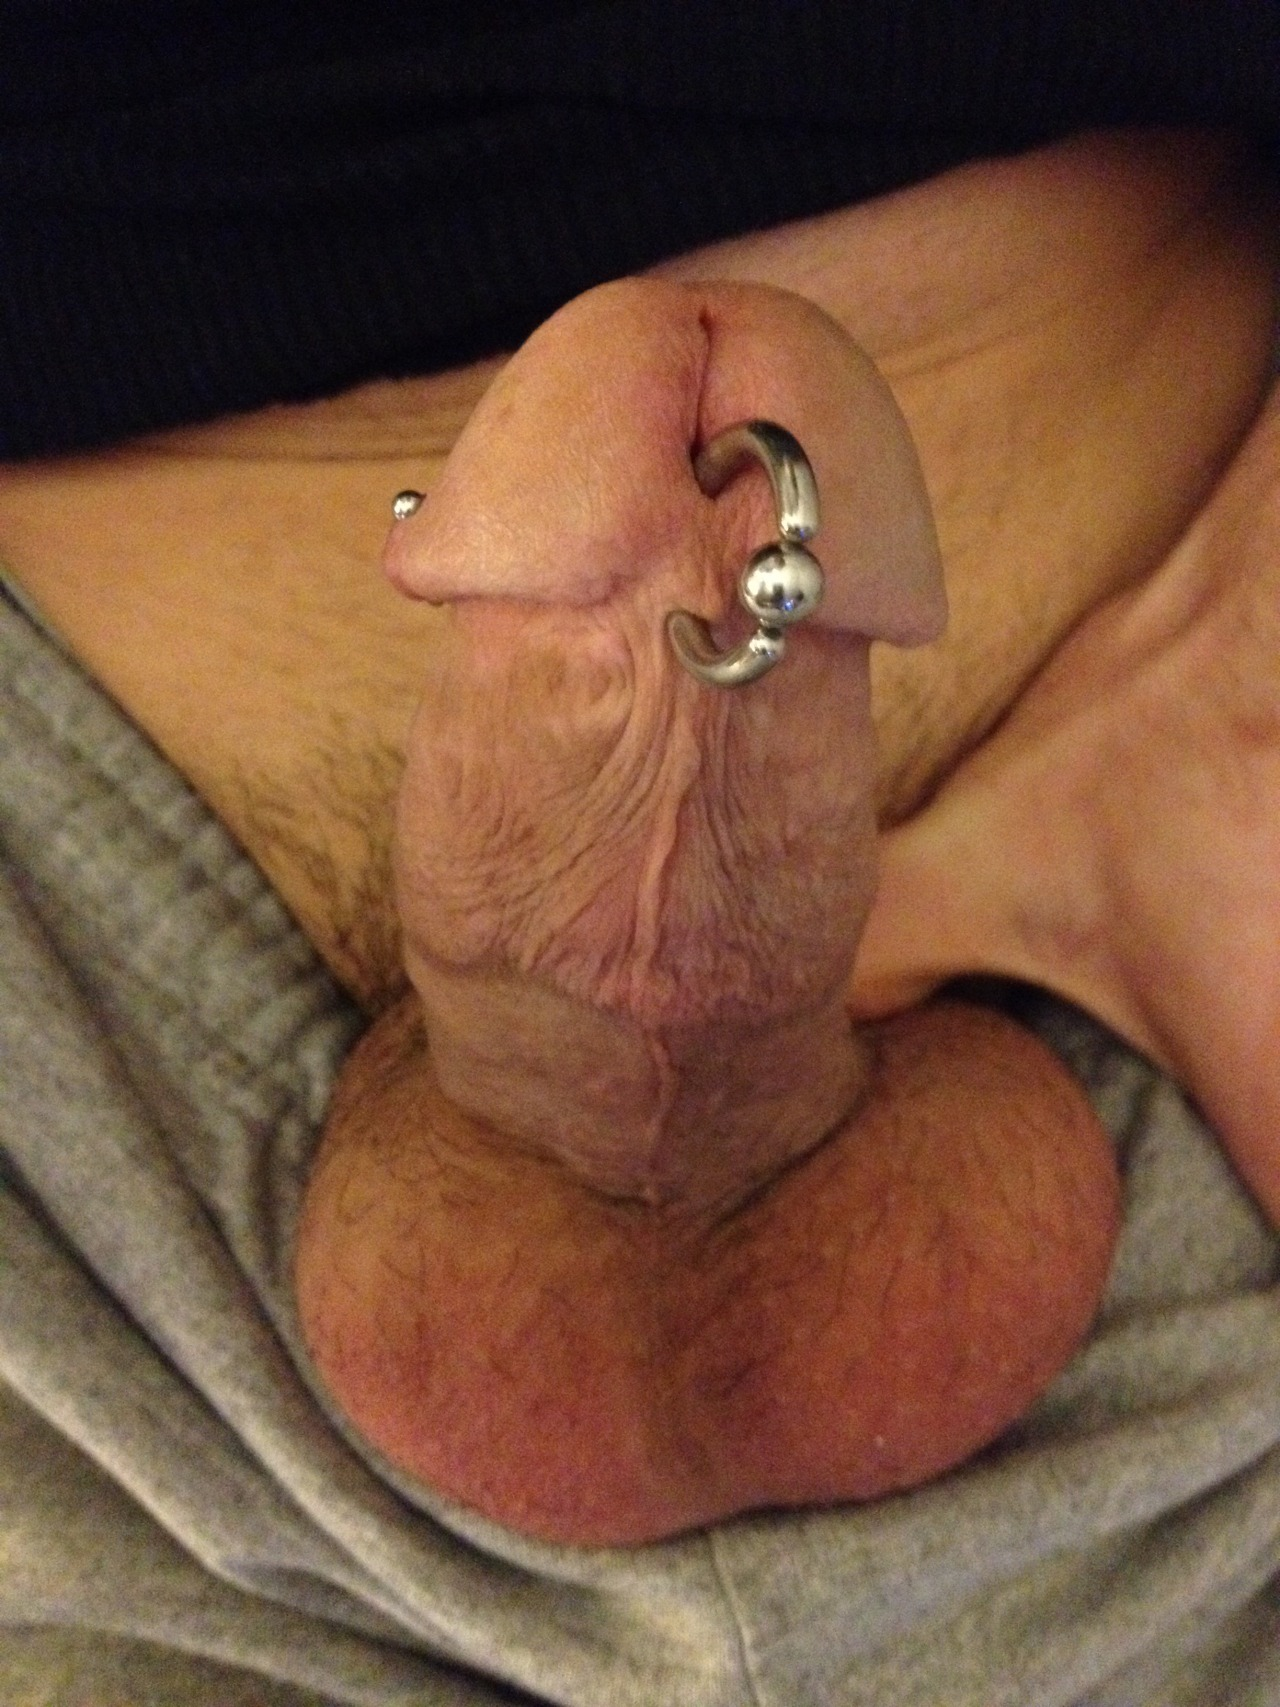 lads-cock-piercing